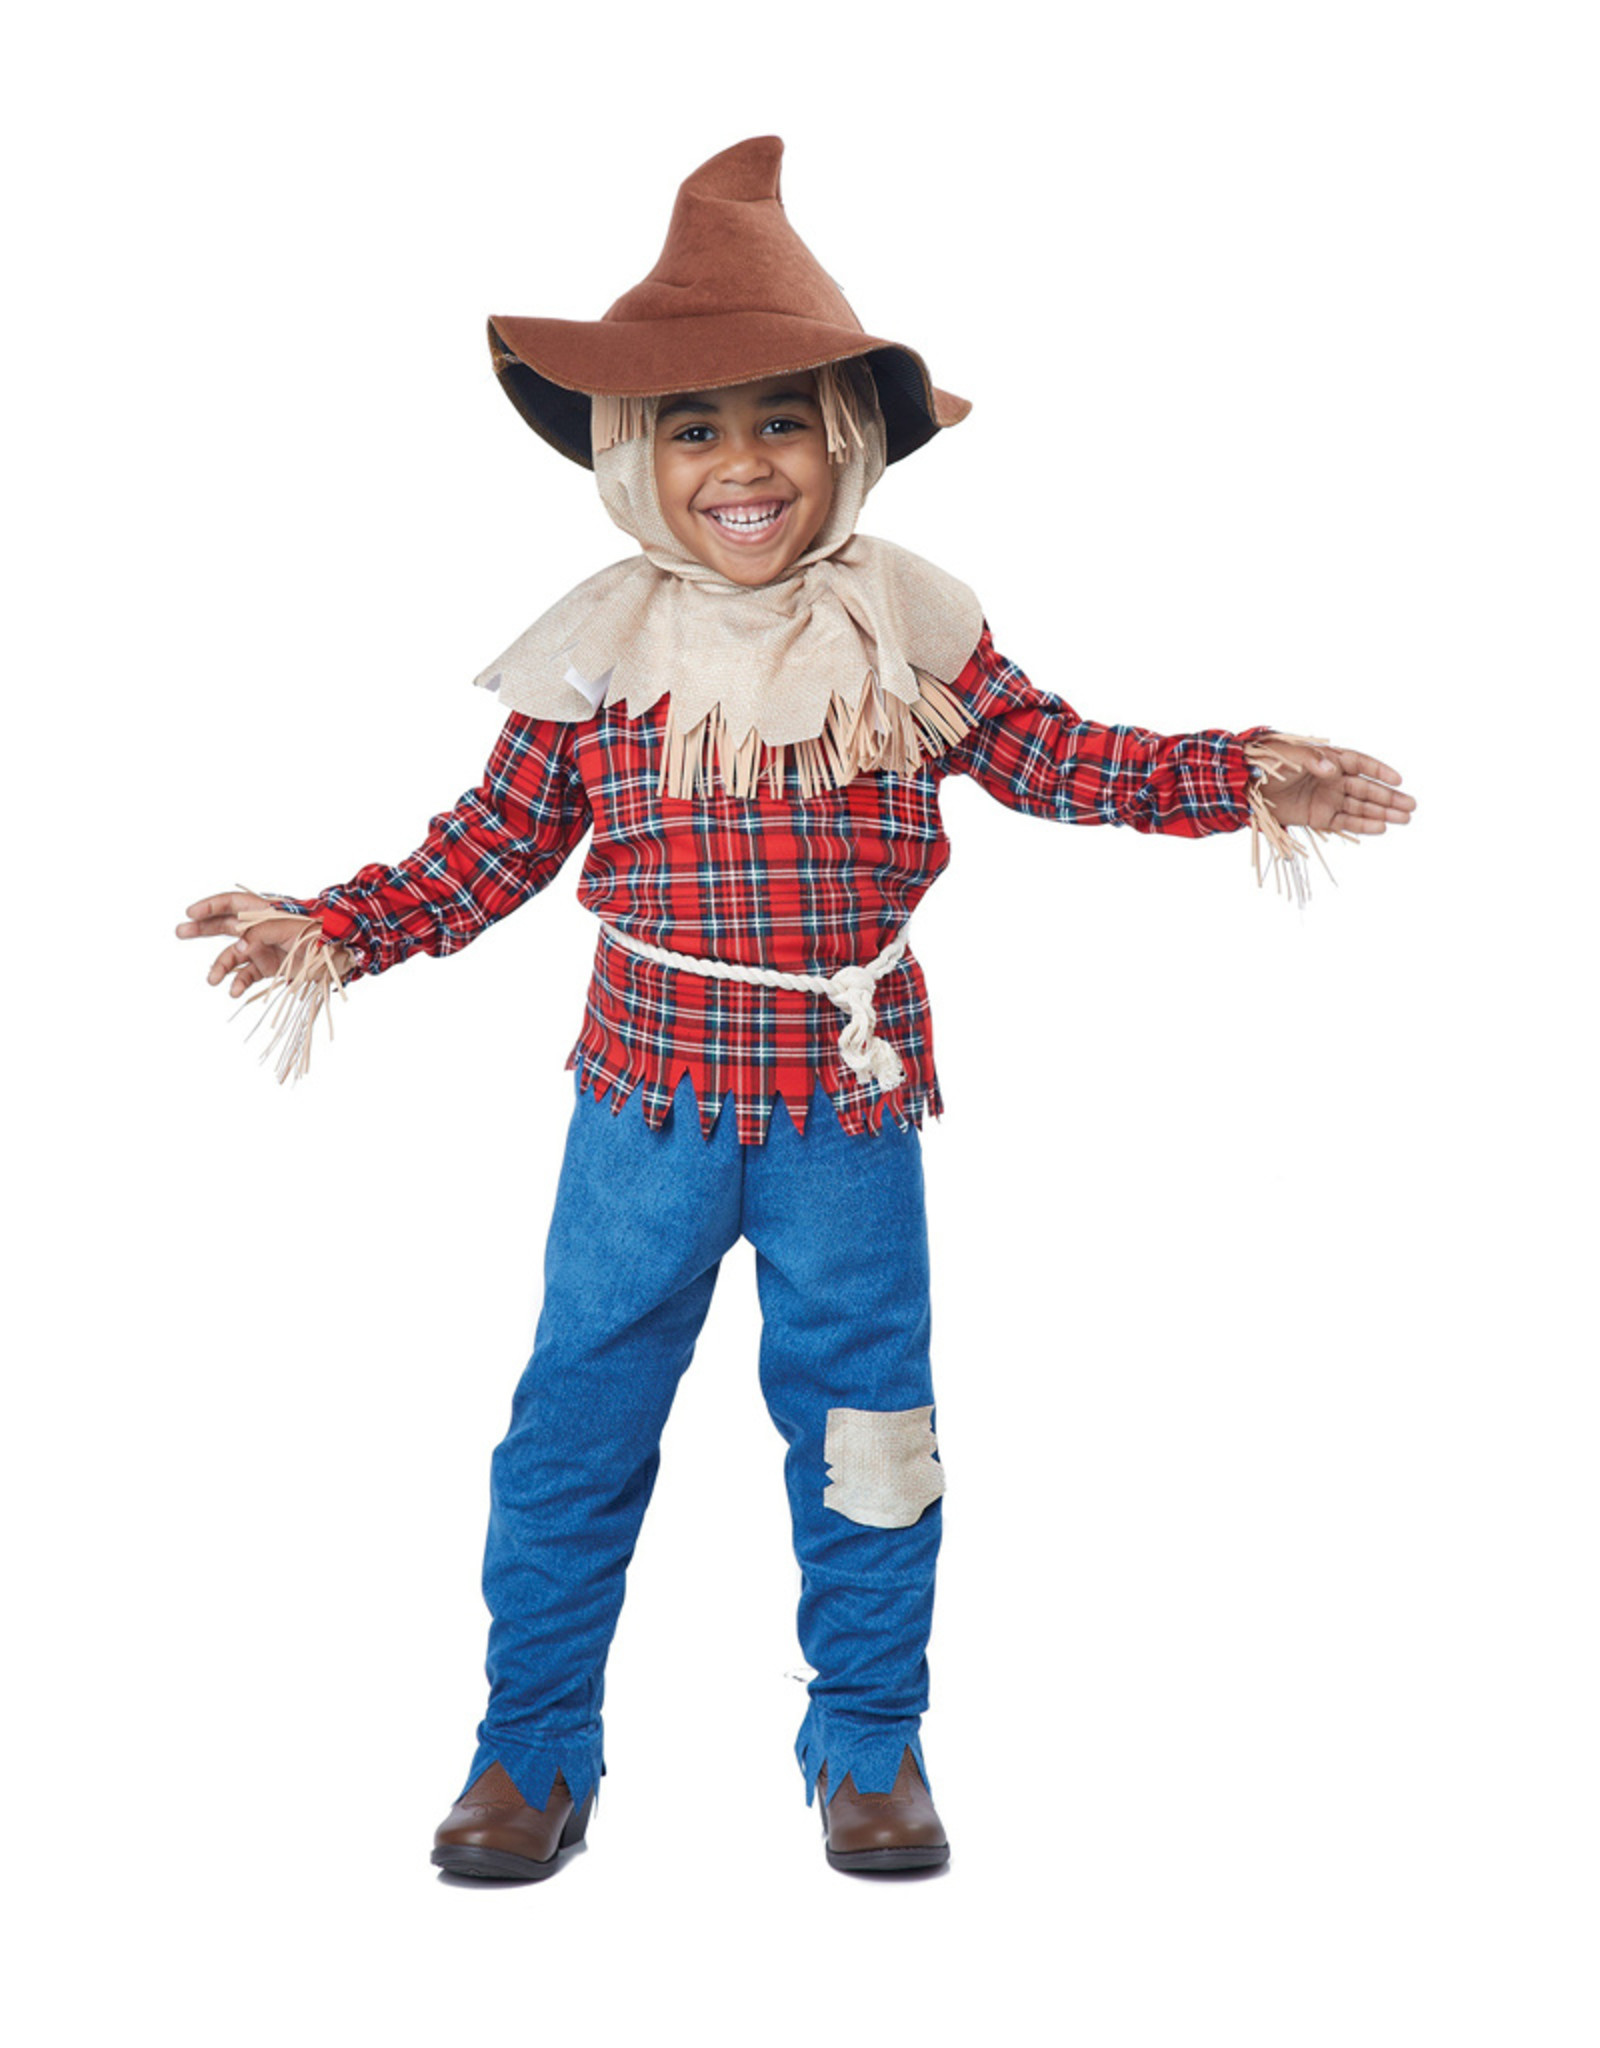 Harvest Time Scarecrow Costume - Toddler